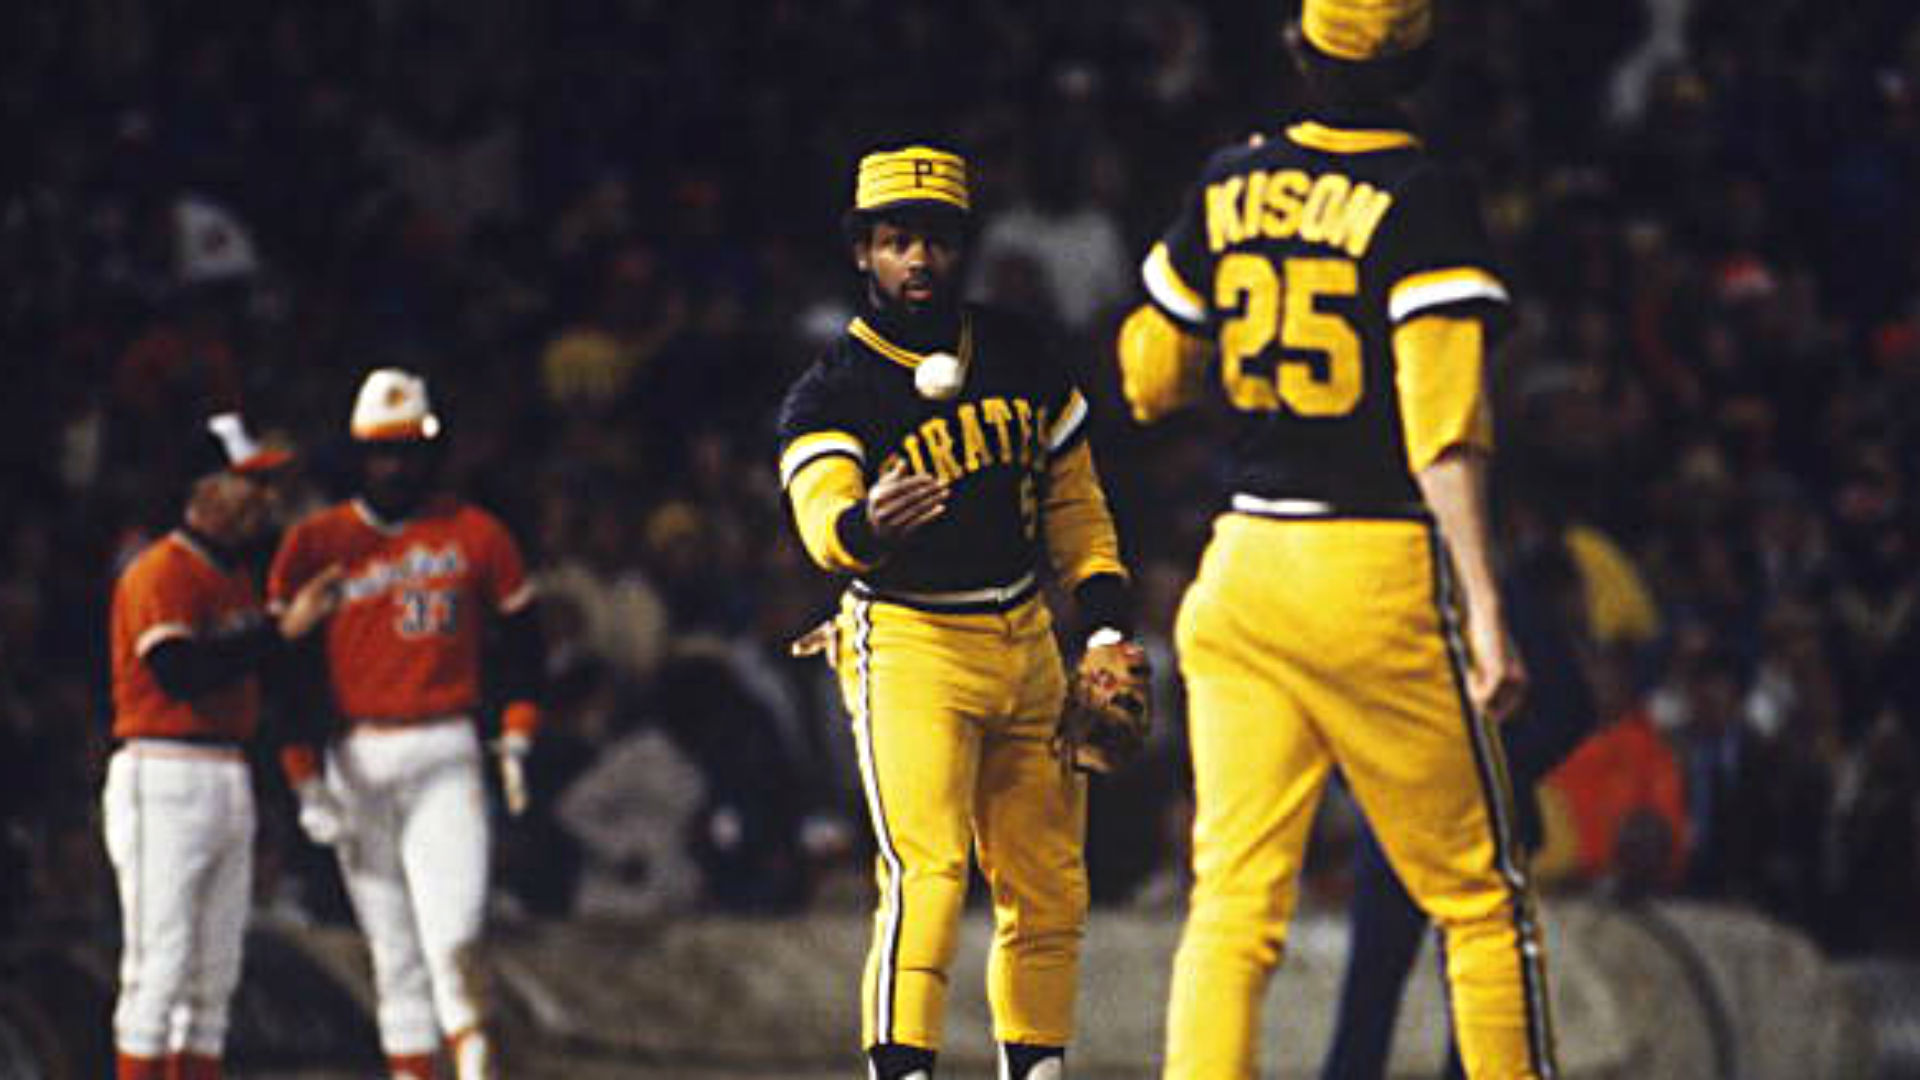 Former Pirates pitcher Bruce Kison, won first night World Series game, dies at 68